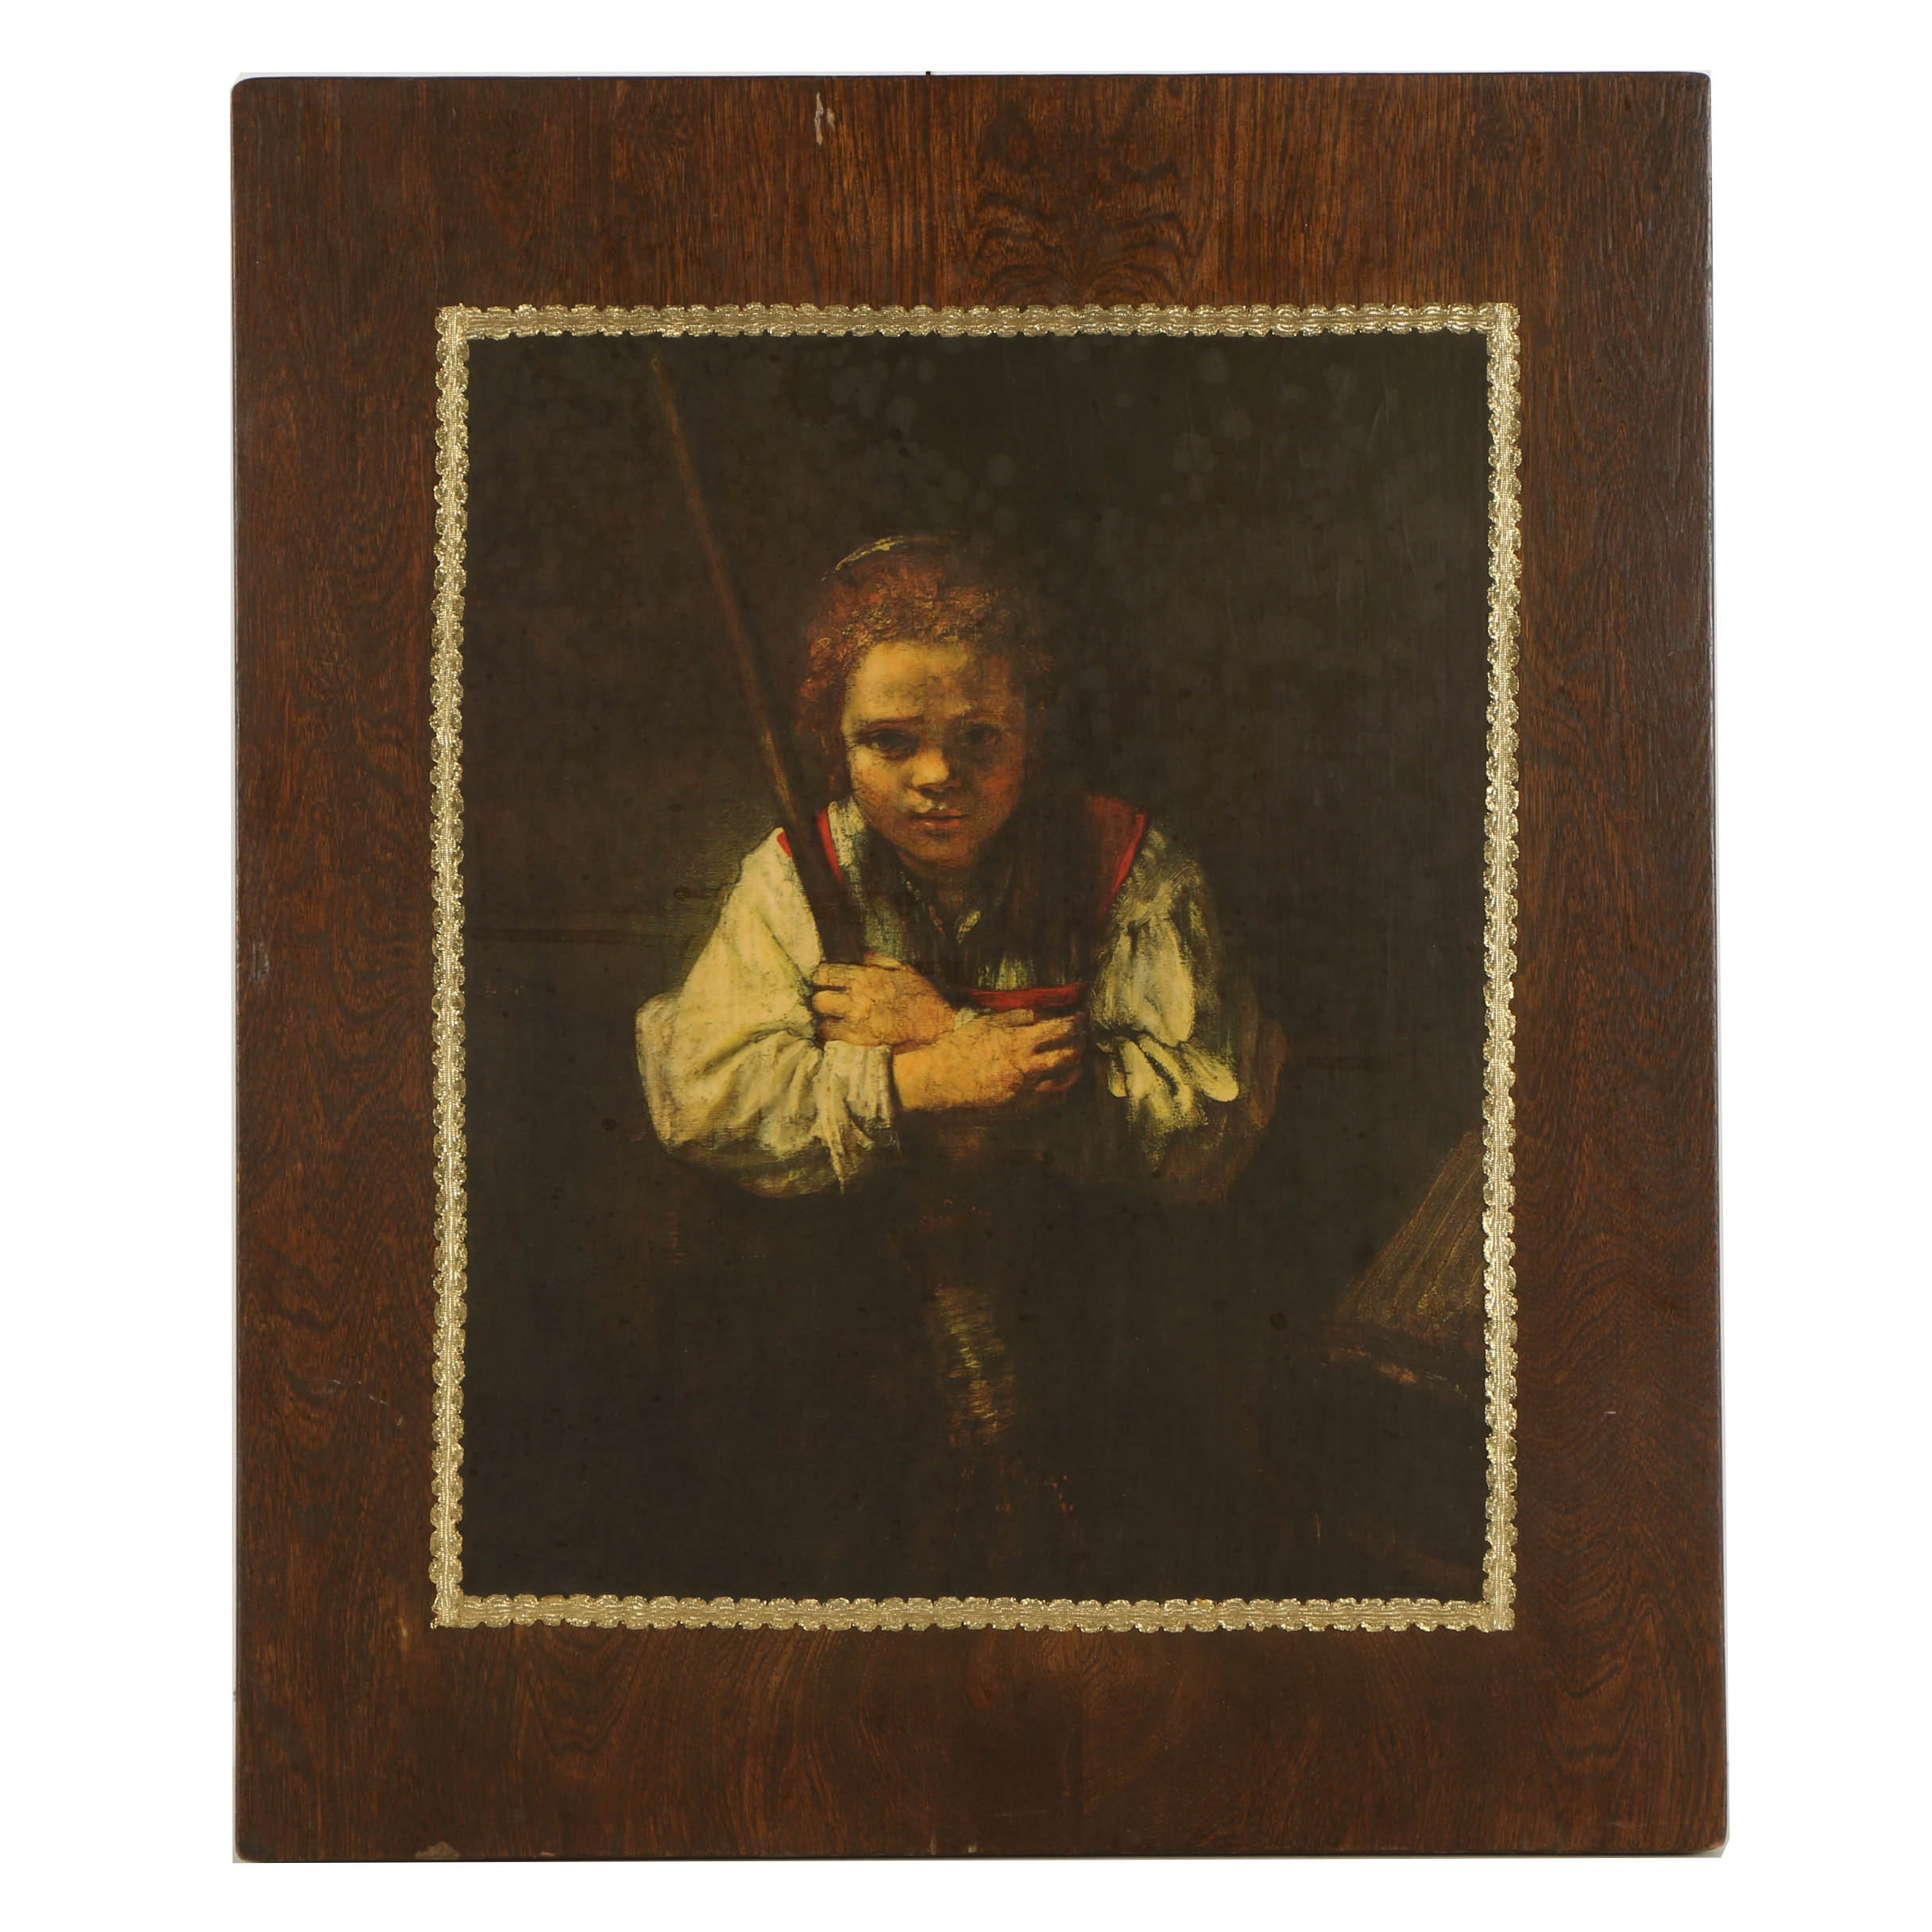 "Offset Lithograph on Paper after Rembrandt van Rijn ""A Girl with a Broom"""